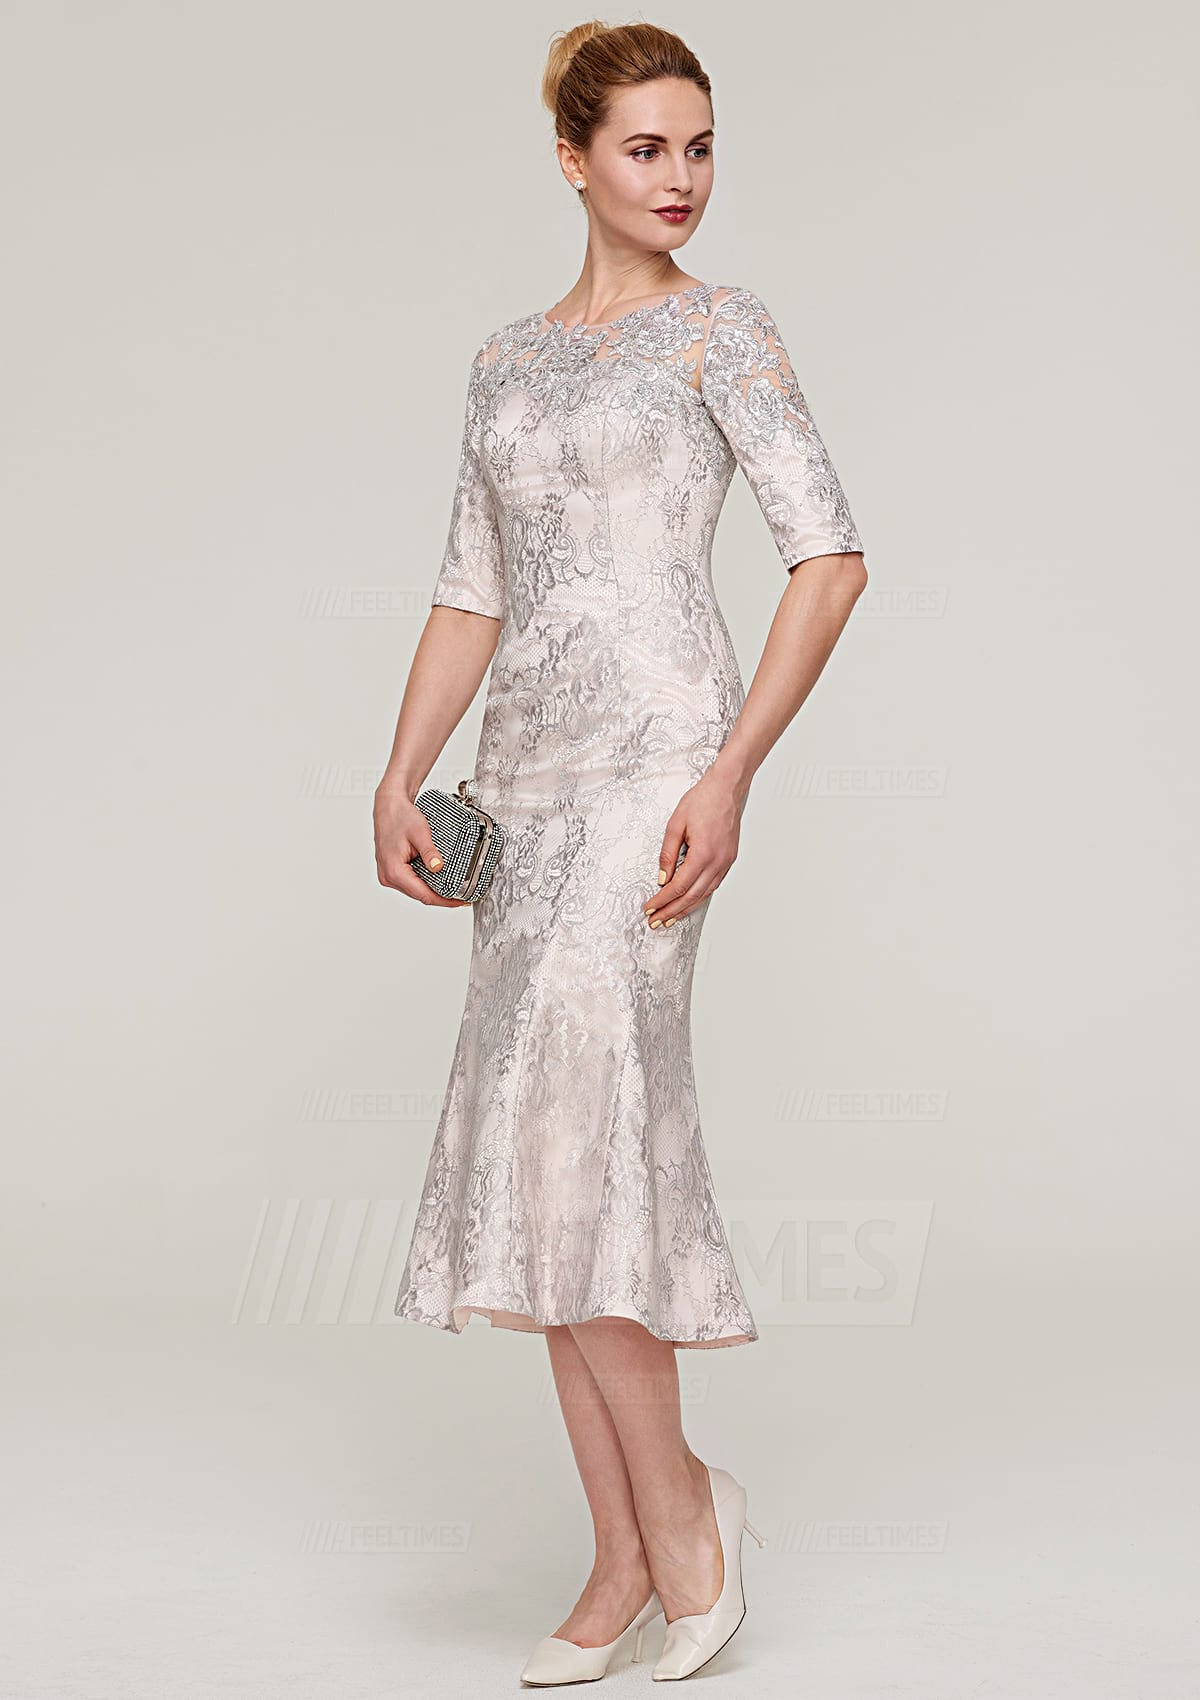 Sheath/Column Bateau Half Sleeve Tea-Length Lace Mother Of The Bride Dress With Appliqued